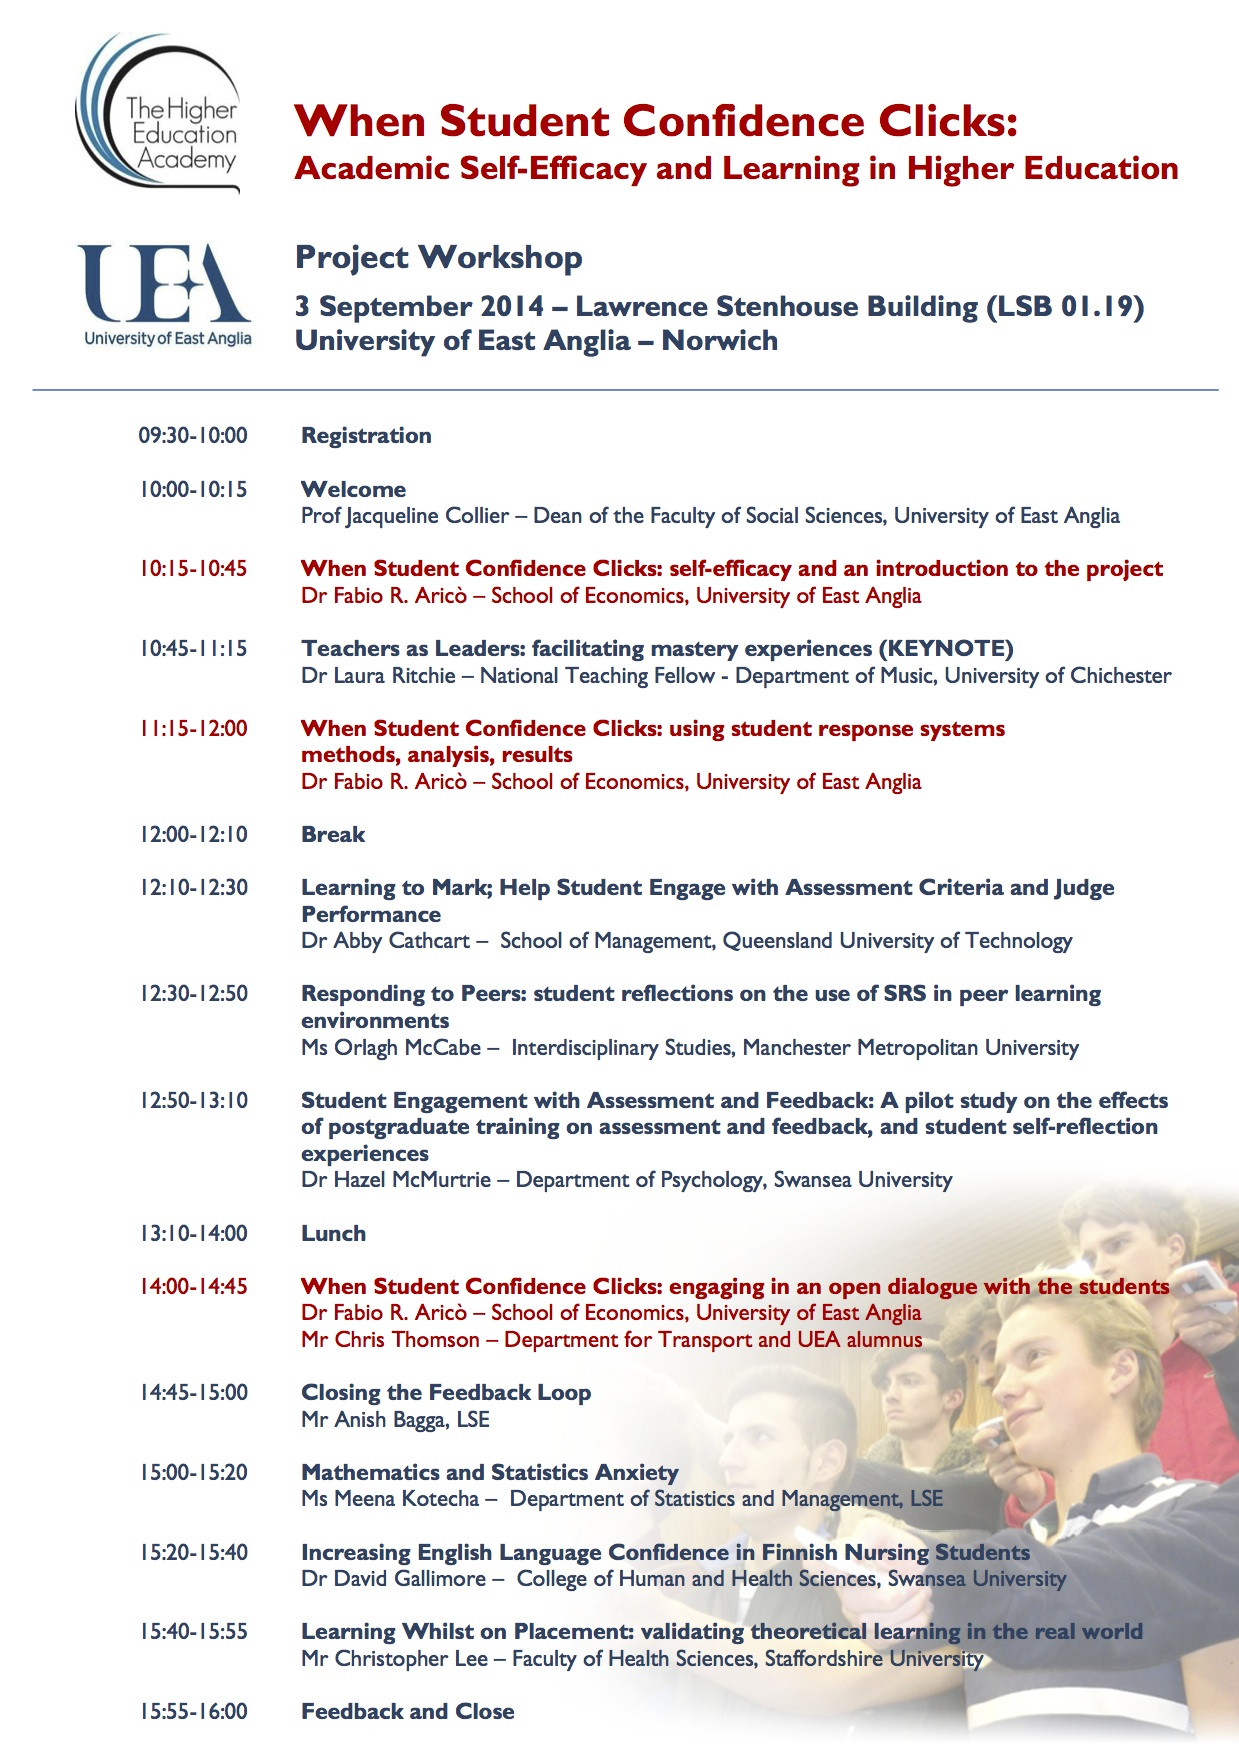 HEA funded Project Conference at UEA, Norwich